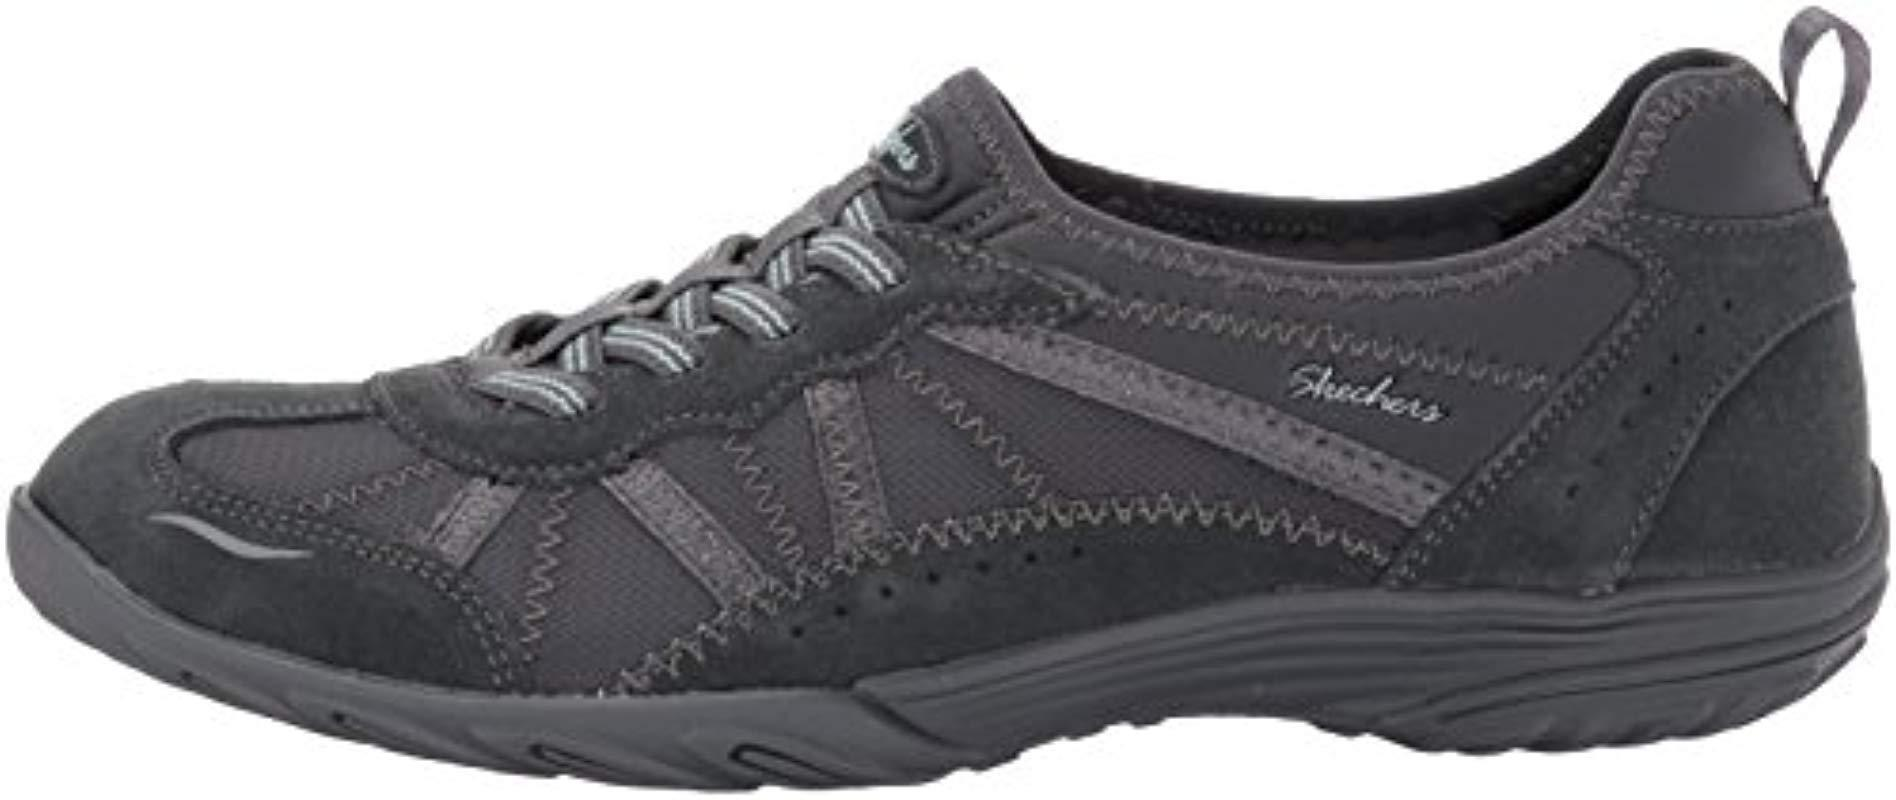 Skechers S Empress On The Spot in Charcoal (Grey)